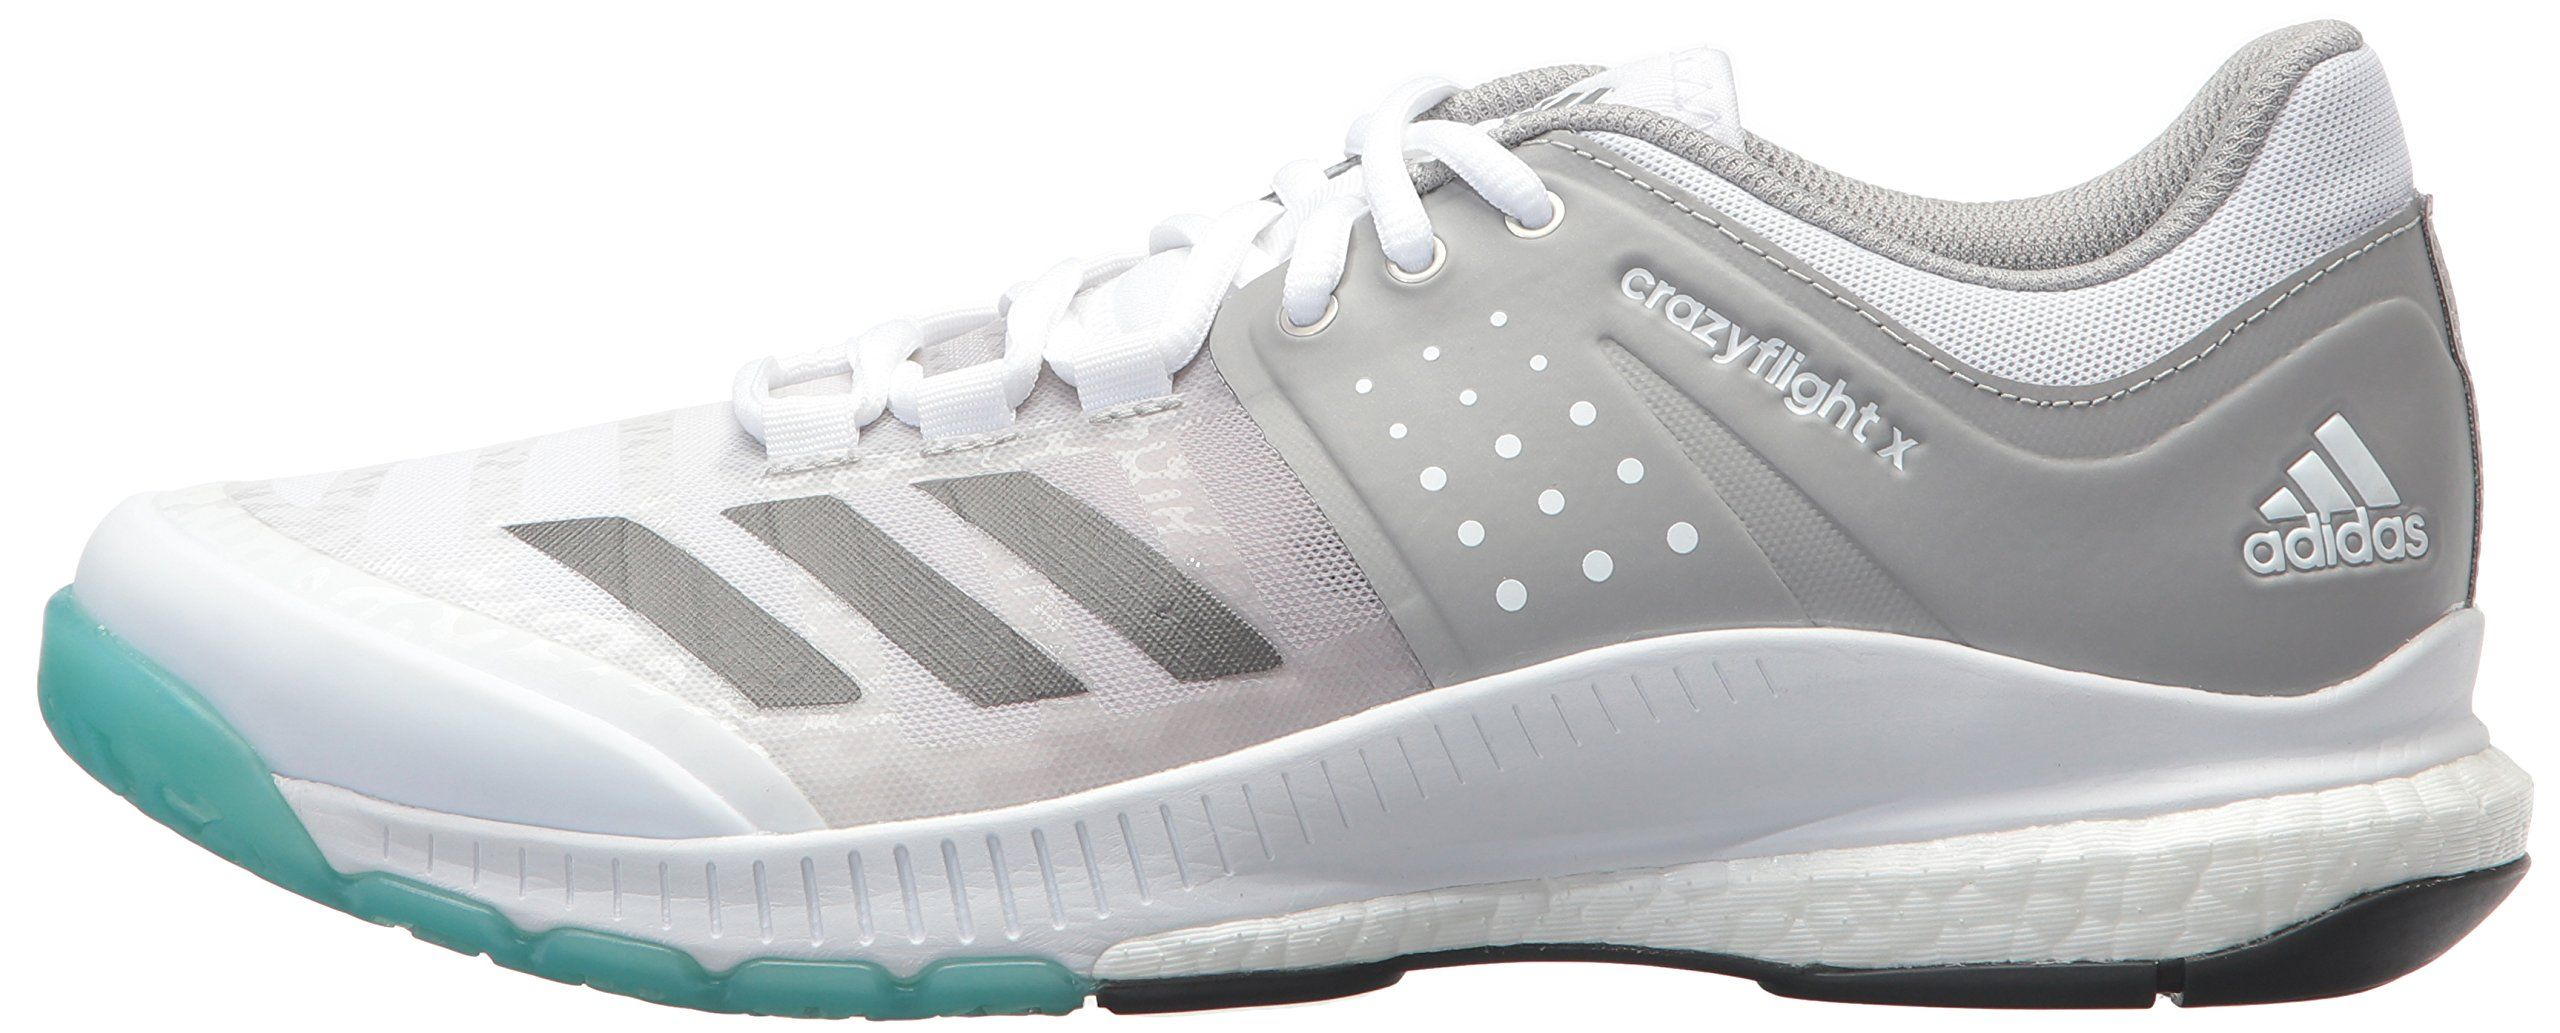 Adidas Womens Crazyflight X Volleyball Shoewhite Night Metallic Grey7 M Us Check This Awesome Product By Adidas Women Volleyball Shoes Best Volleyball Shoes